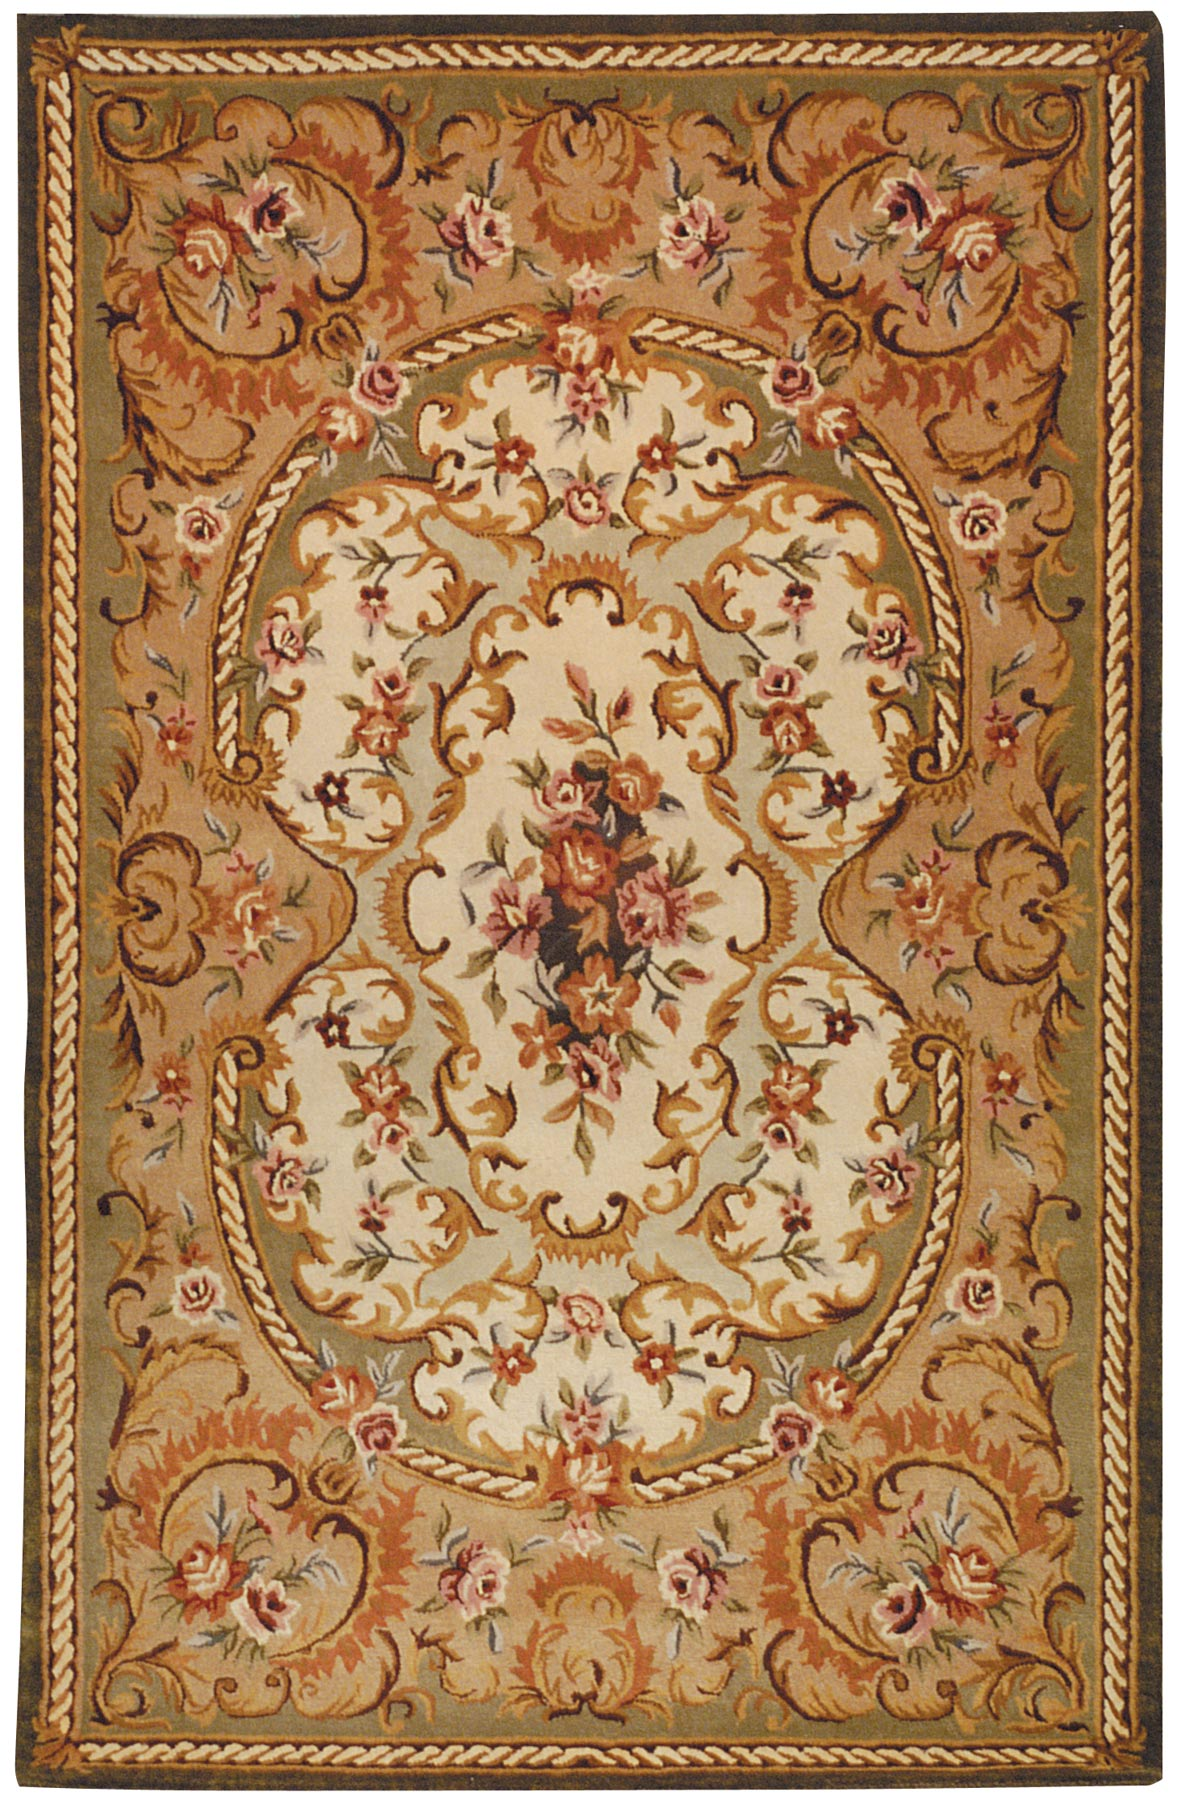 Where can i buy an area rug catherine hand woven natural for Where can i buy area rugs